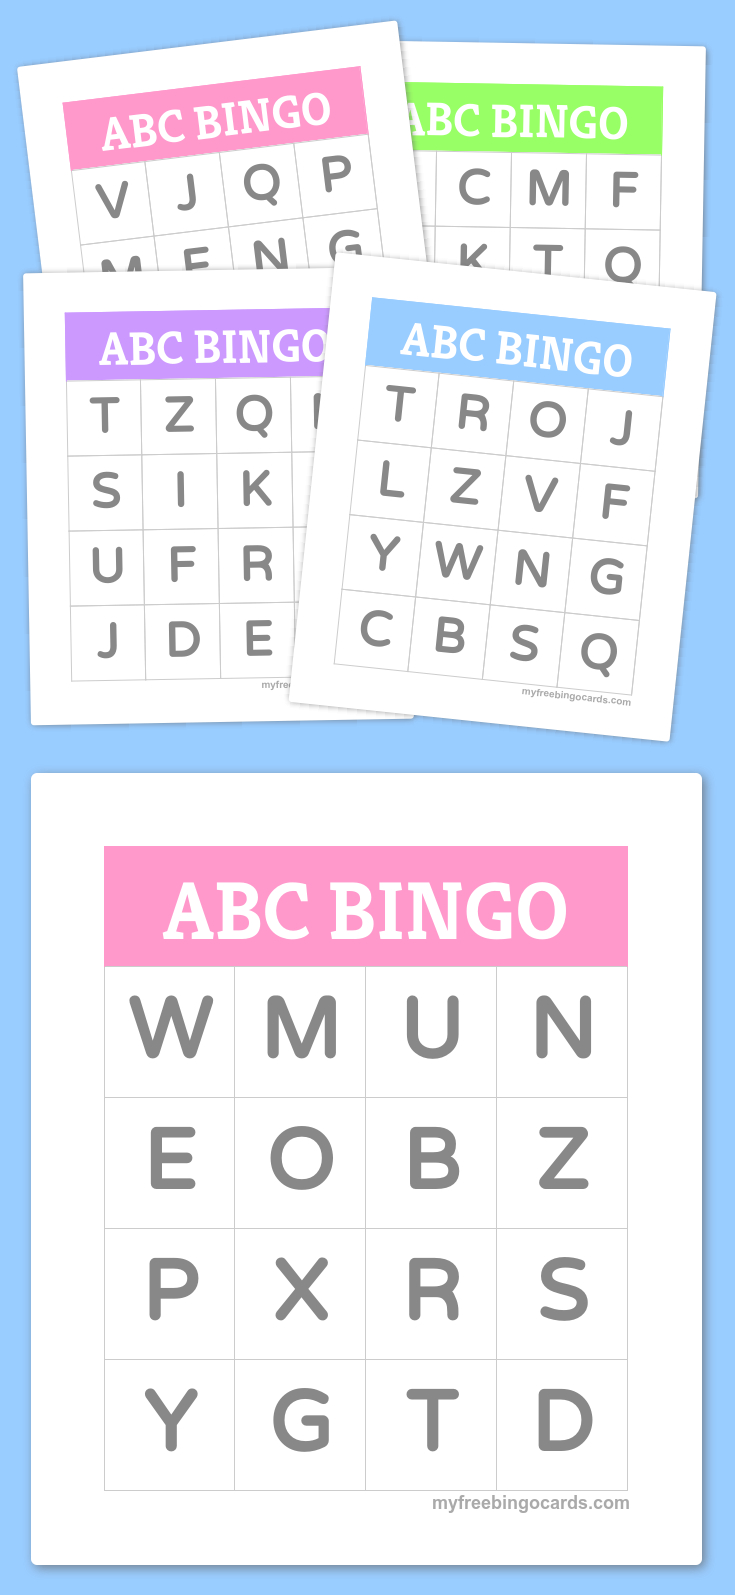 Free Printable Bingo Cards | Letters | Pinterest | Preschool - Free Printable Spanish Bingo Cards